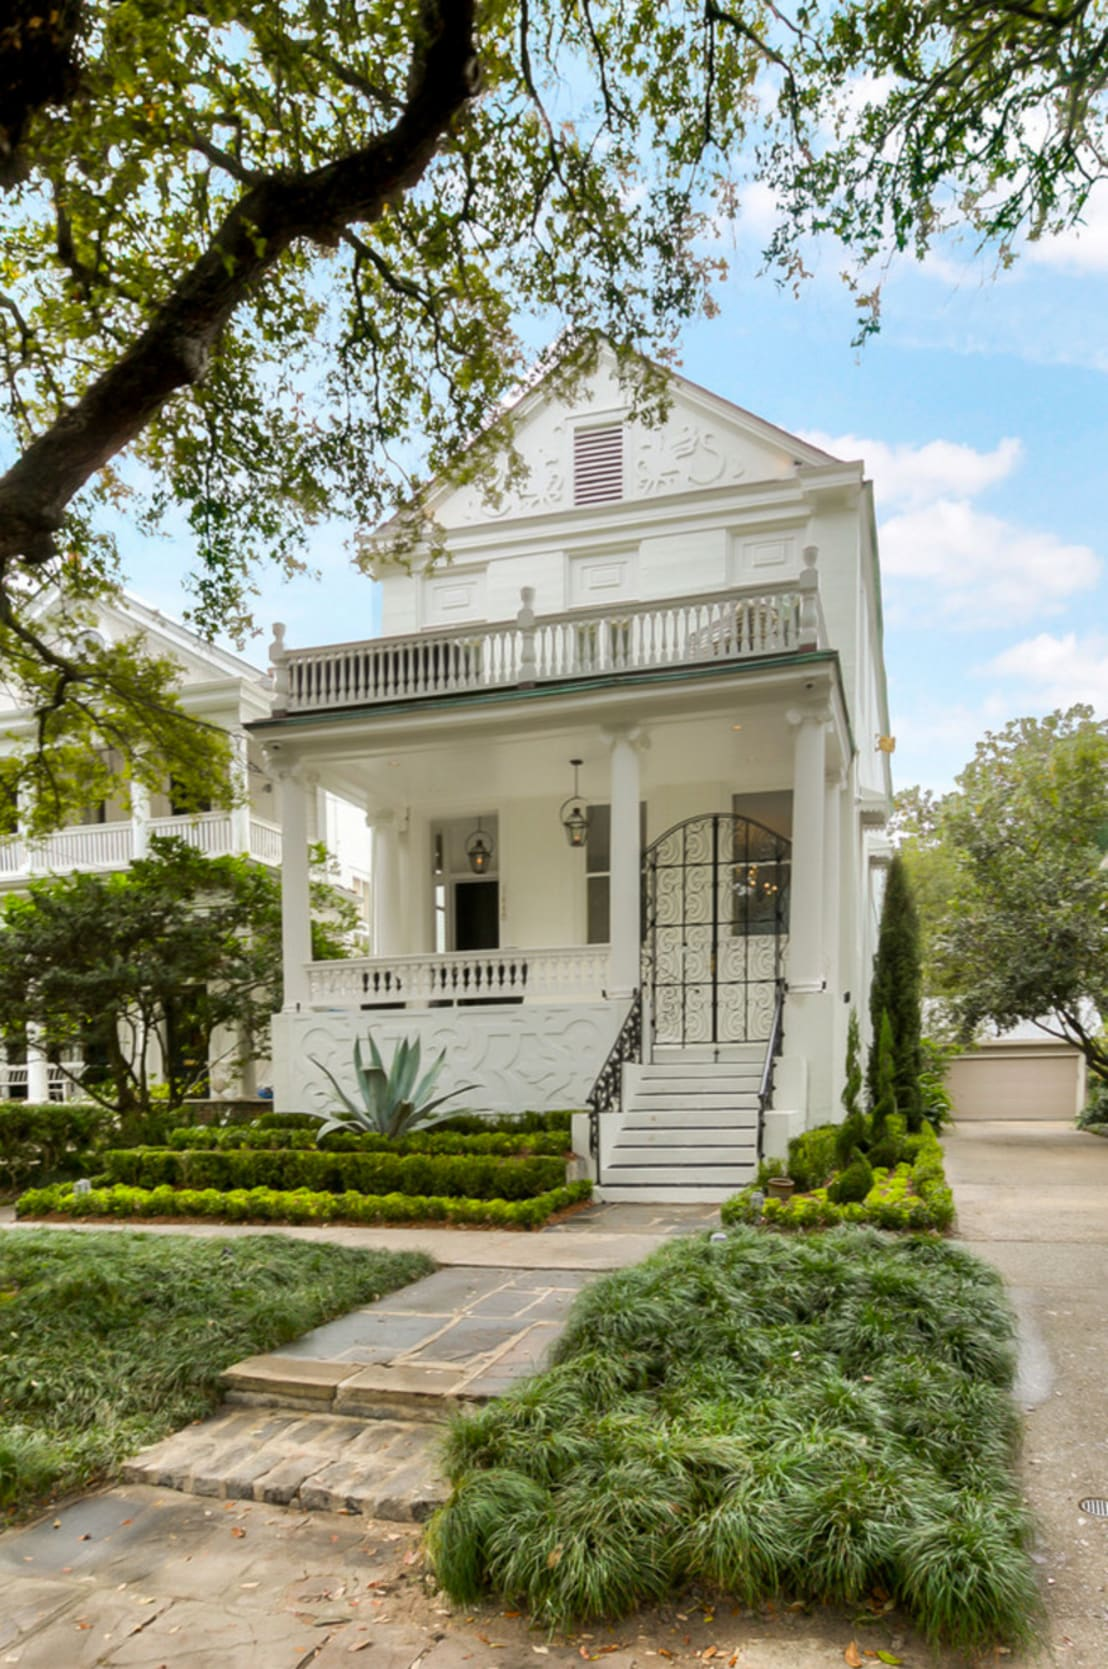 3 new orleans homes that you need to see for inspiration for I need a new home